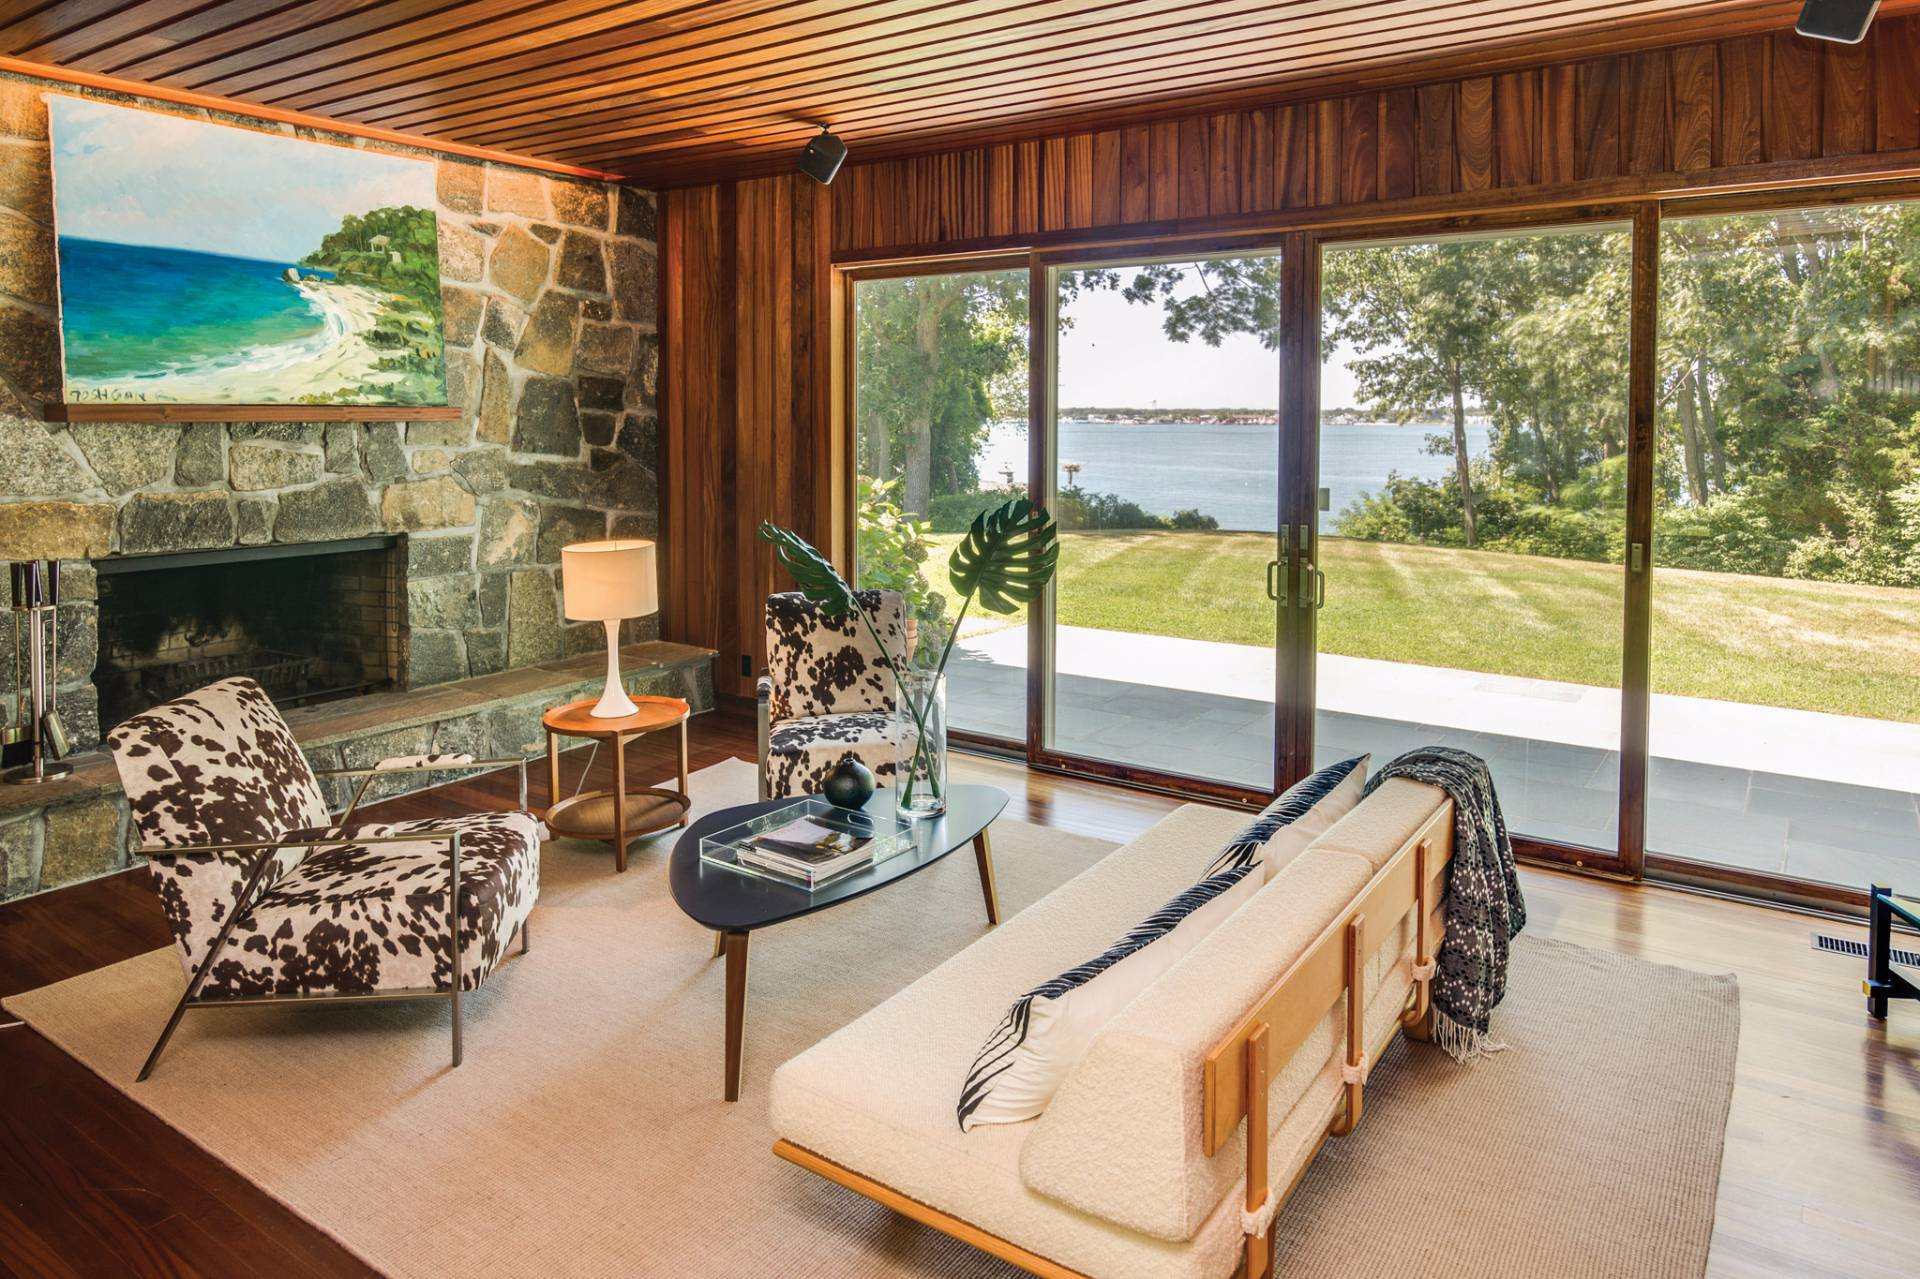 Additional photo for property listing at Shelter Island California Style Water View Mid Century Mod 27 Dinah Rock Road,  Shelter Island, New York